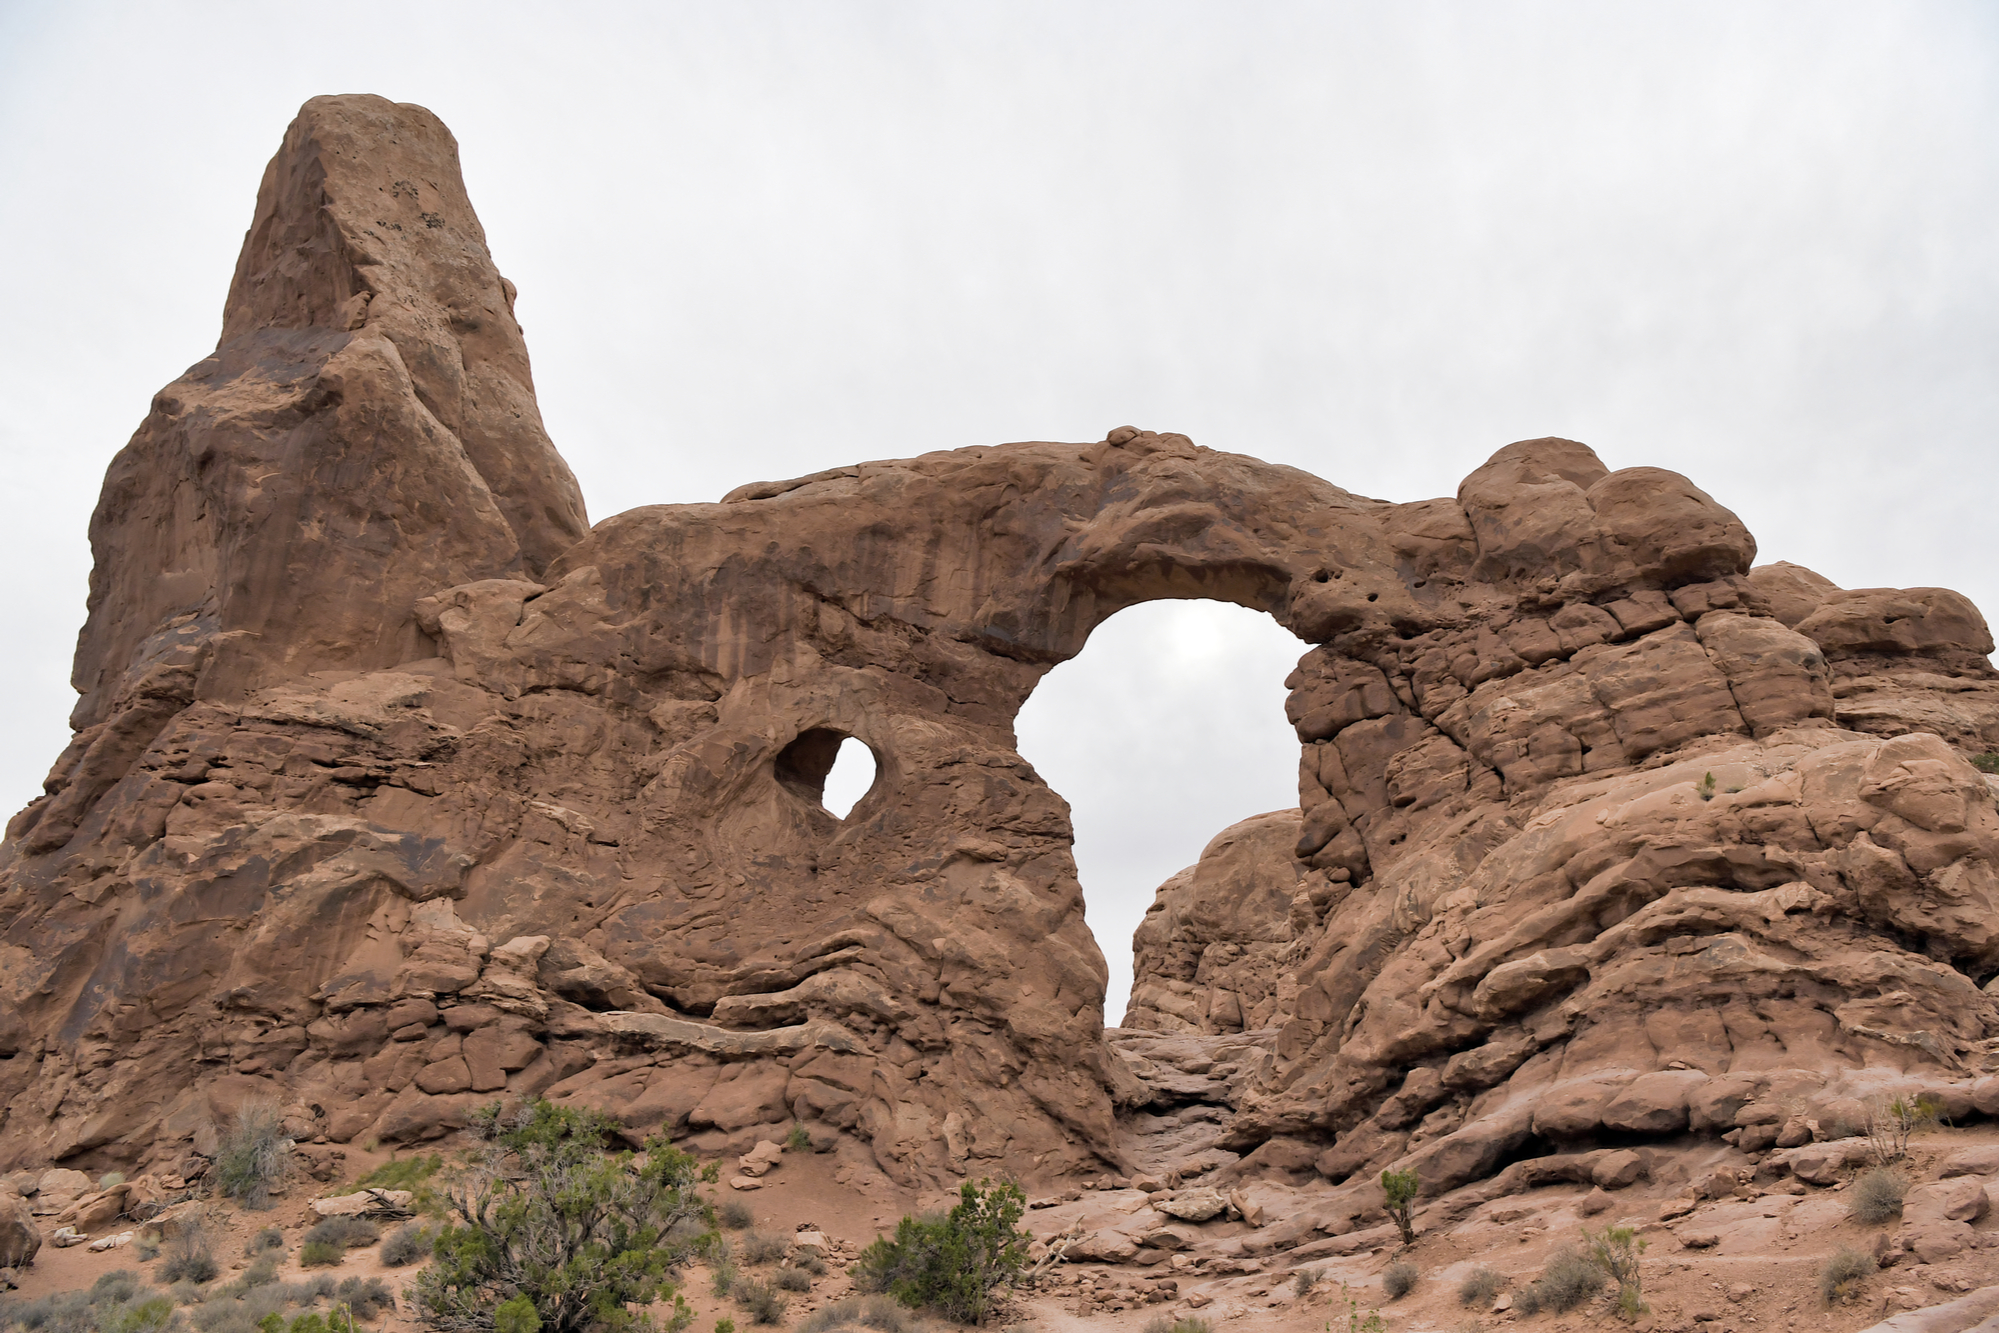 Close-set pair of natural arches known as a pothole arch formed by erosion (nature).